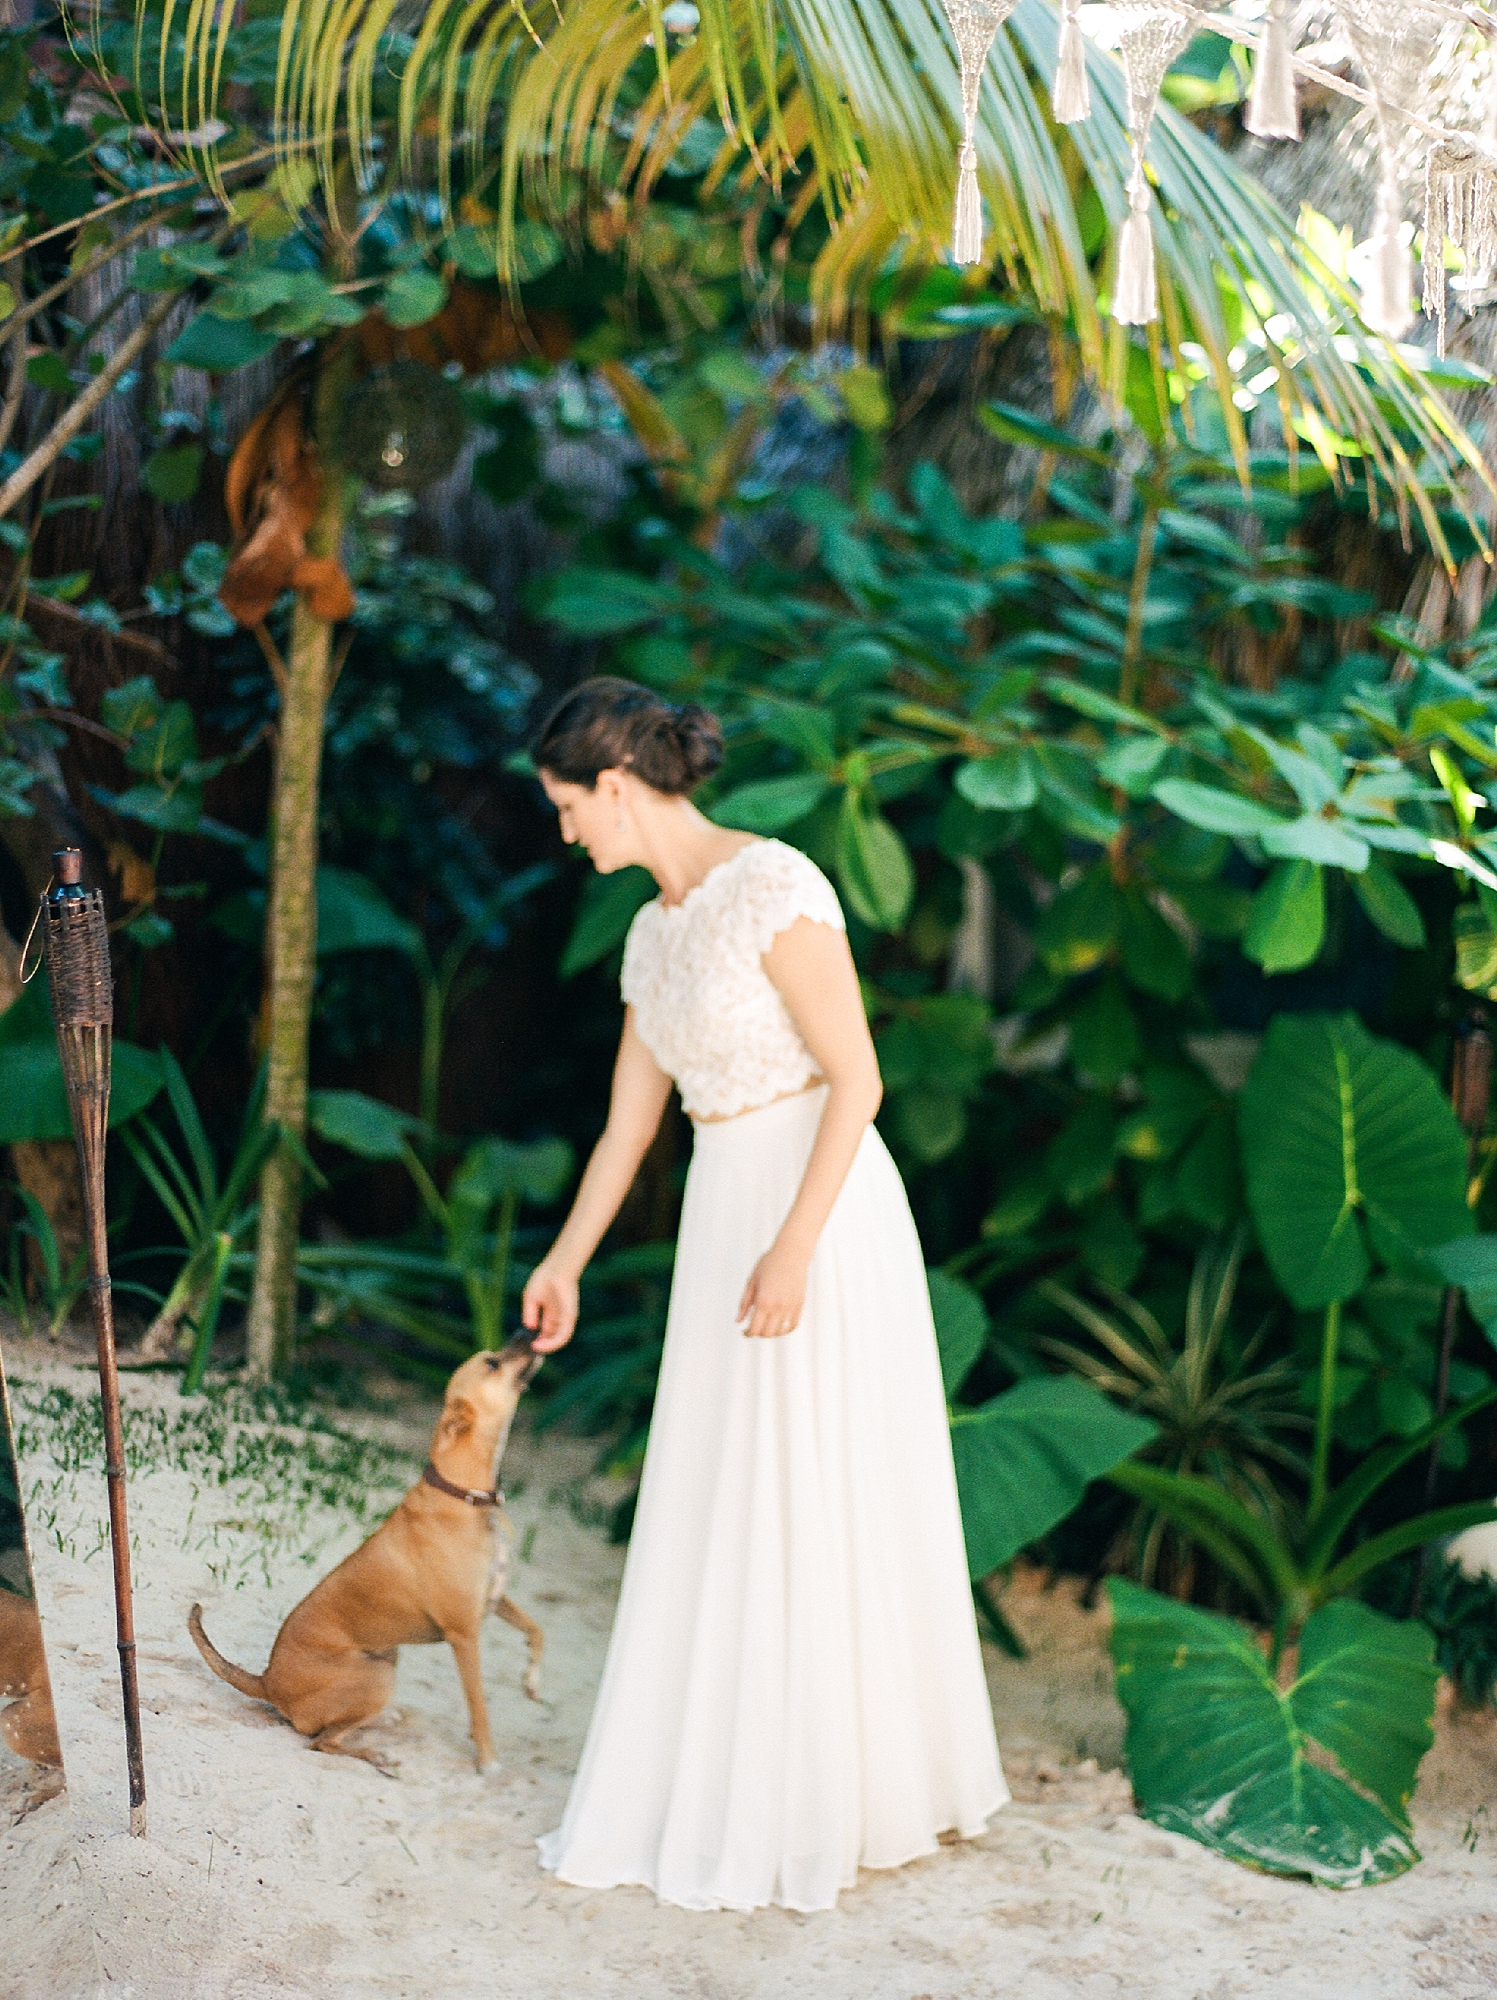 Stylish and Candid Destination Film Wedding Photography in Tulum Mexico by Magdalena Studios 0008